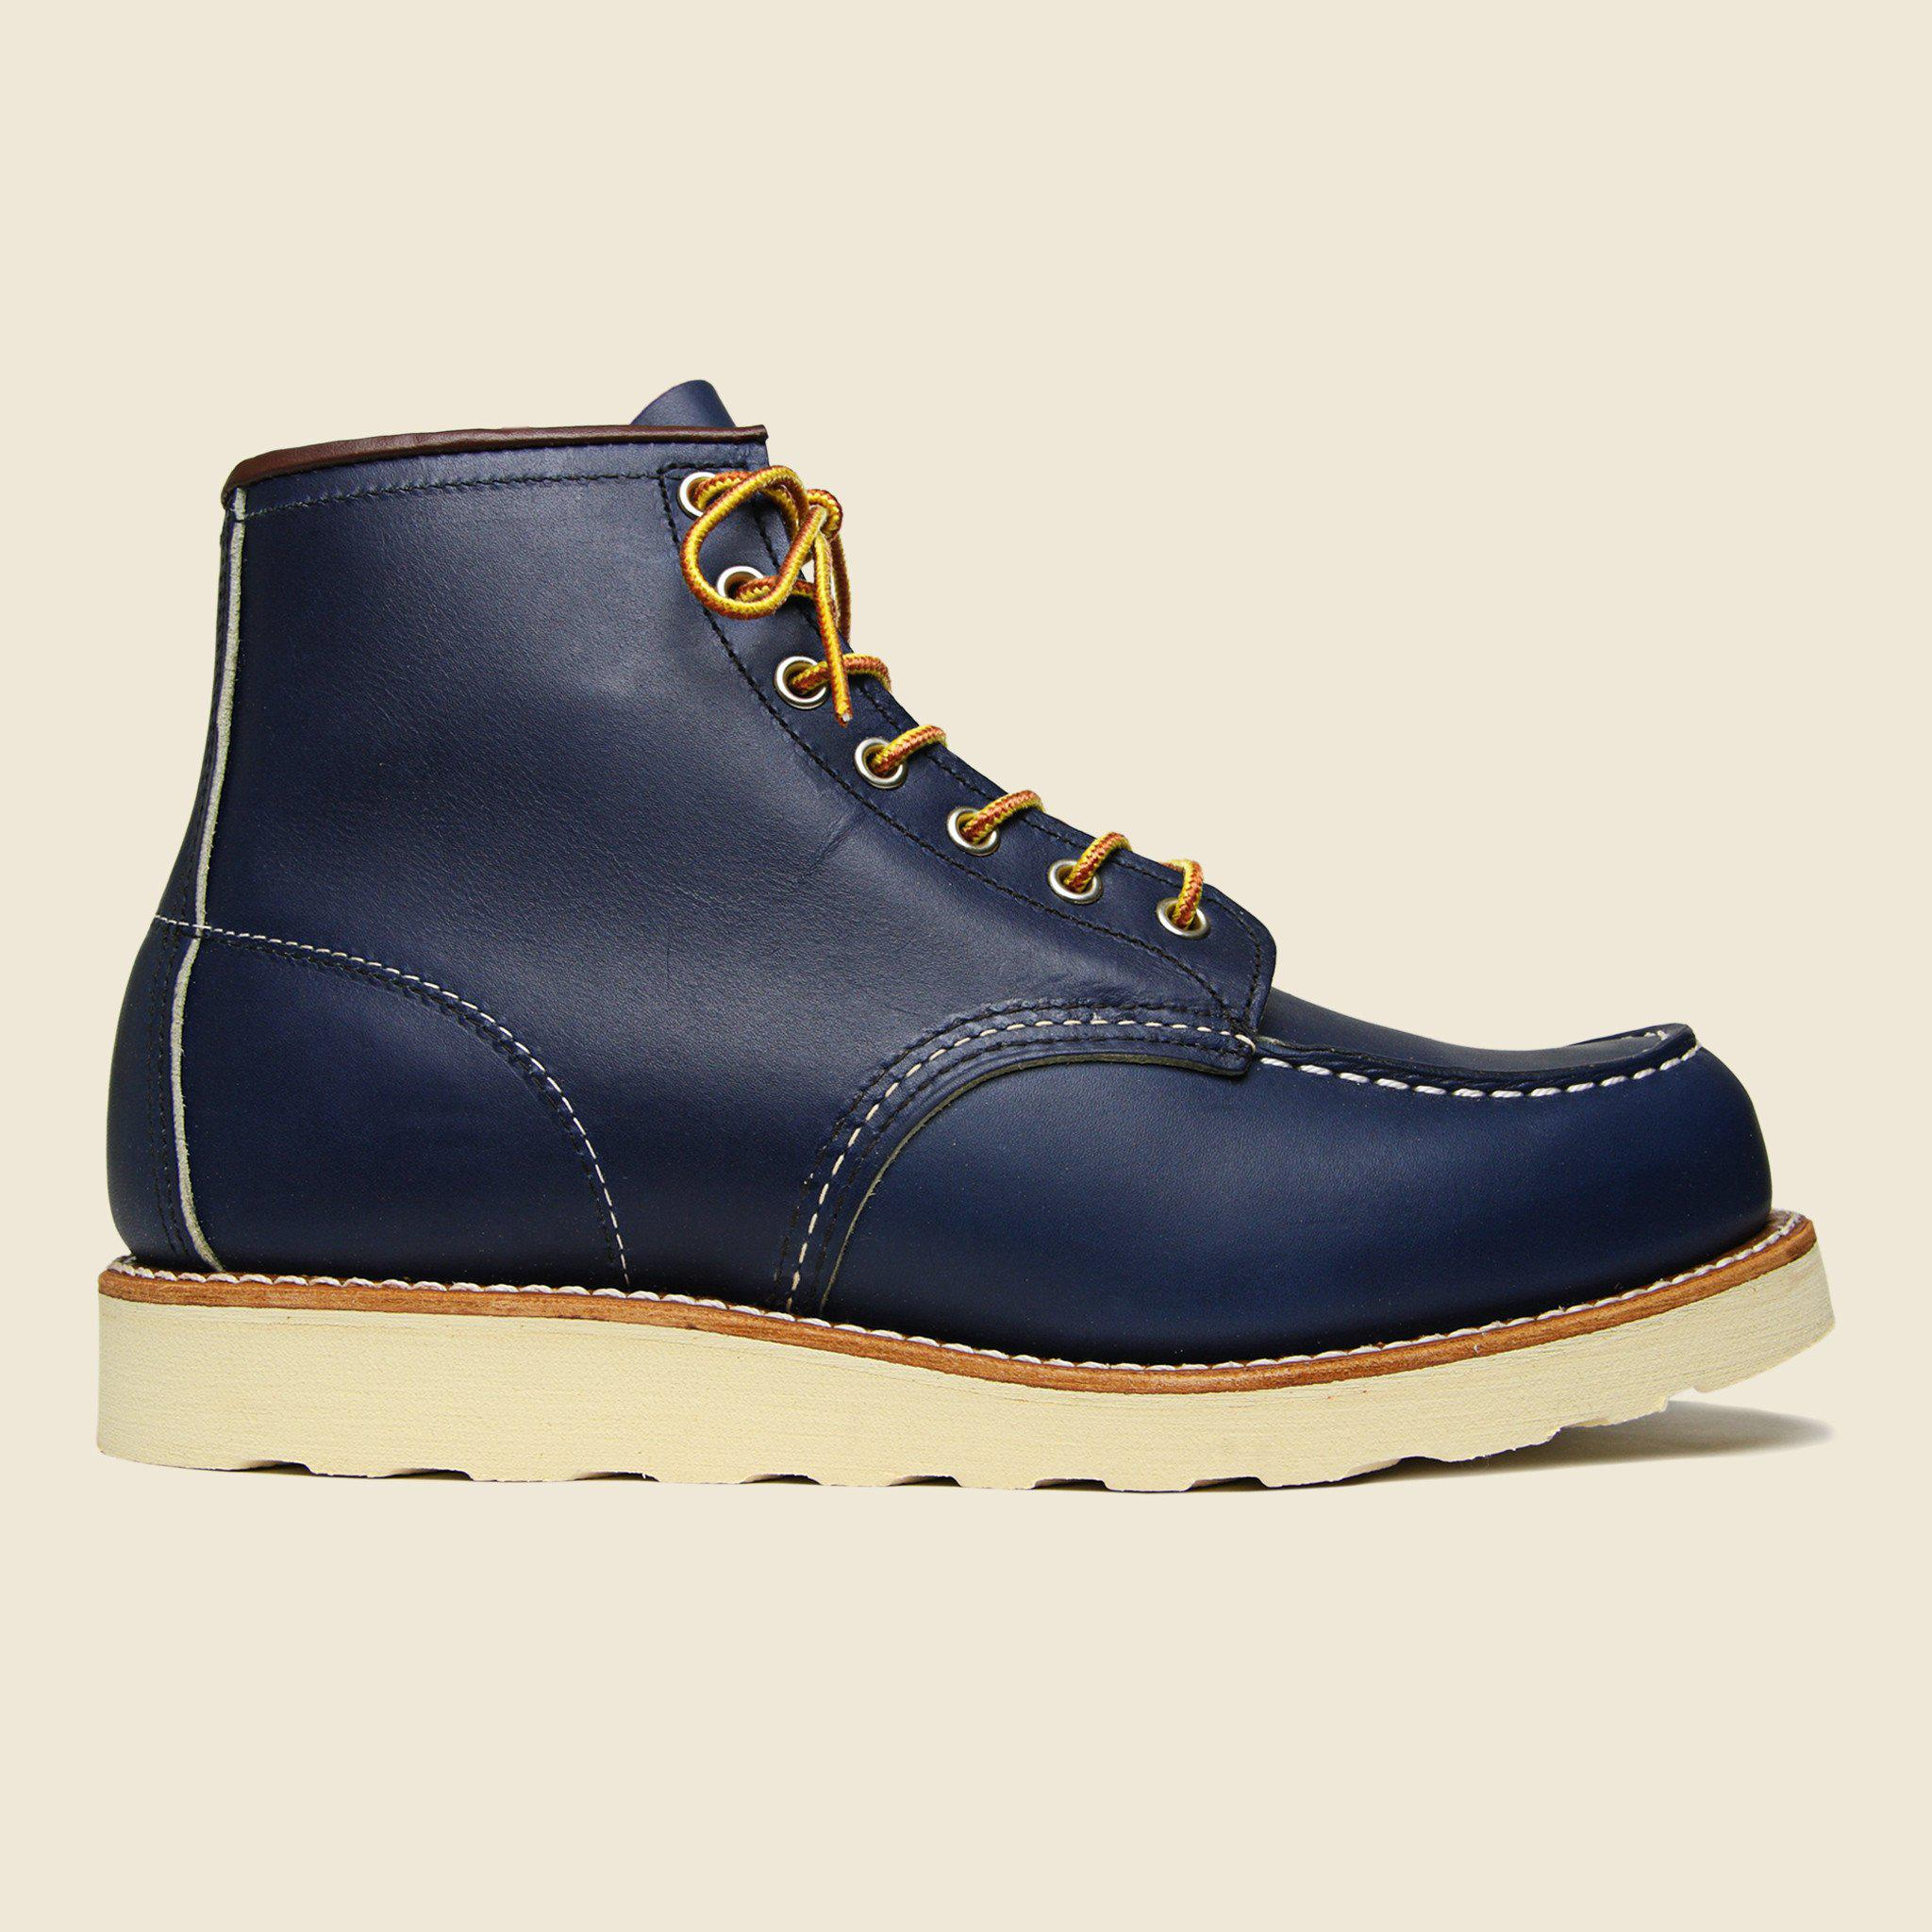 faccdcb93200 Lyst - Red Wing Limited Edition Moc Toe 6